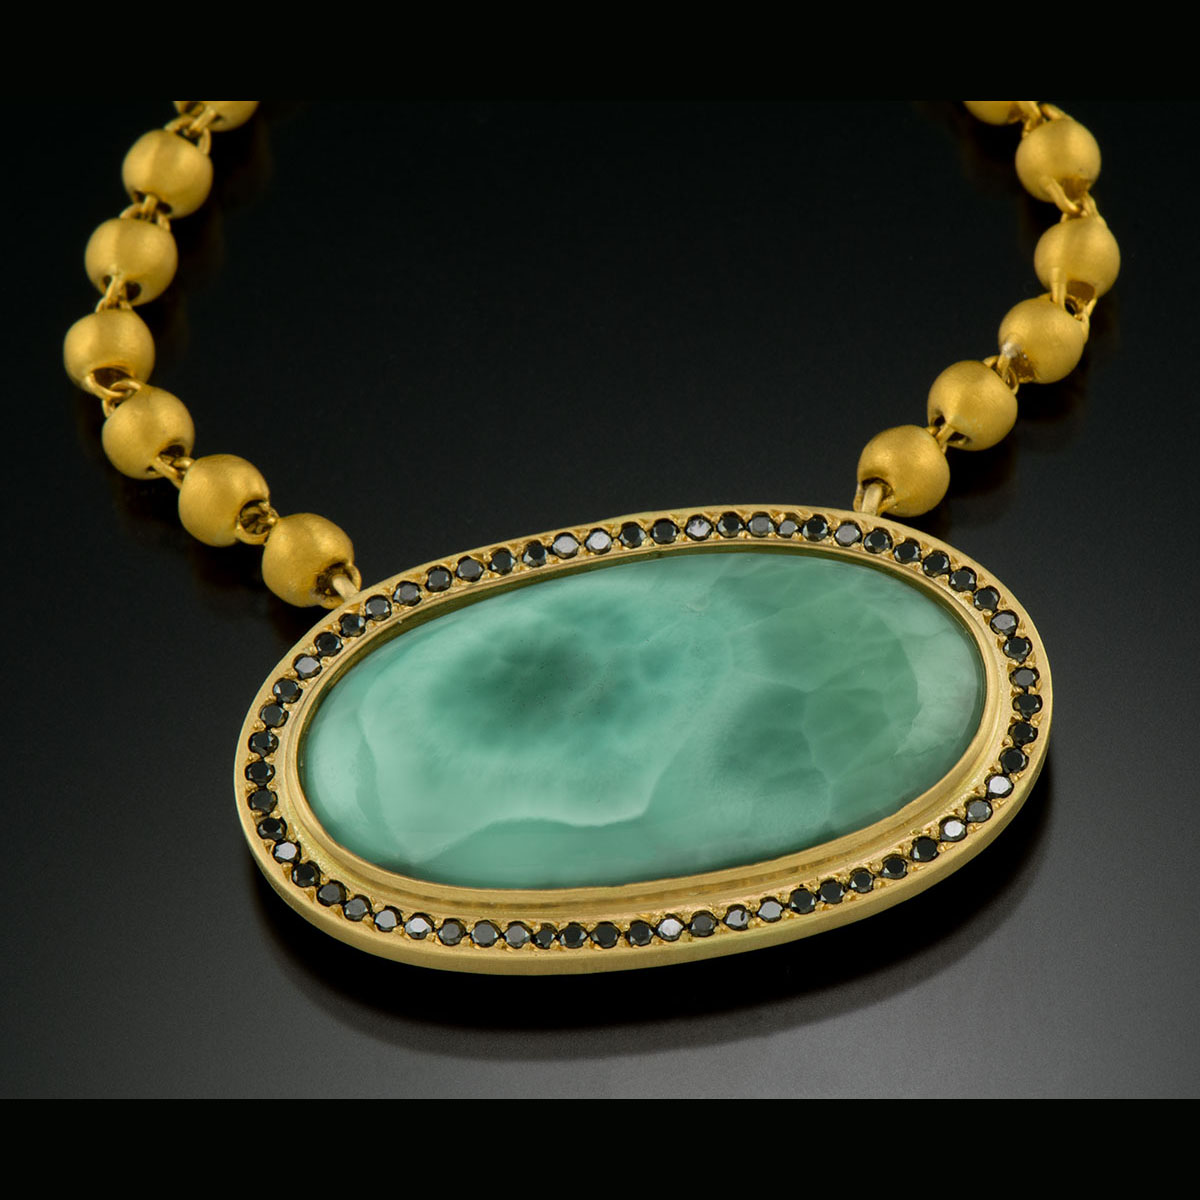 24K and 18K yellow gold necklace with Larimar